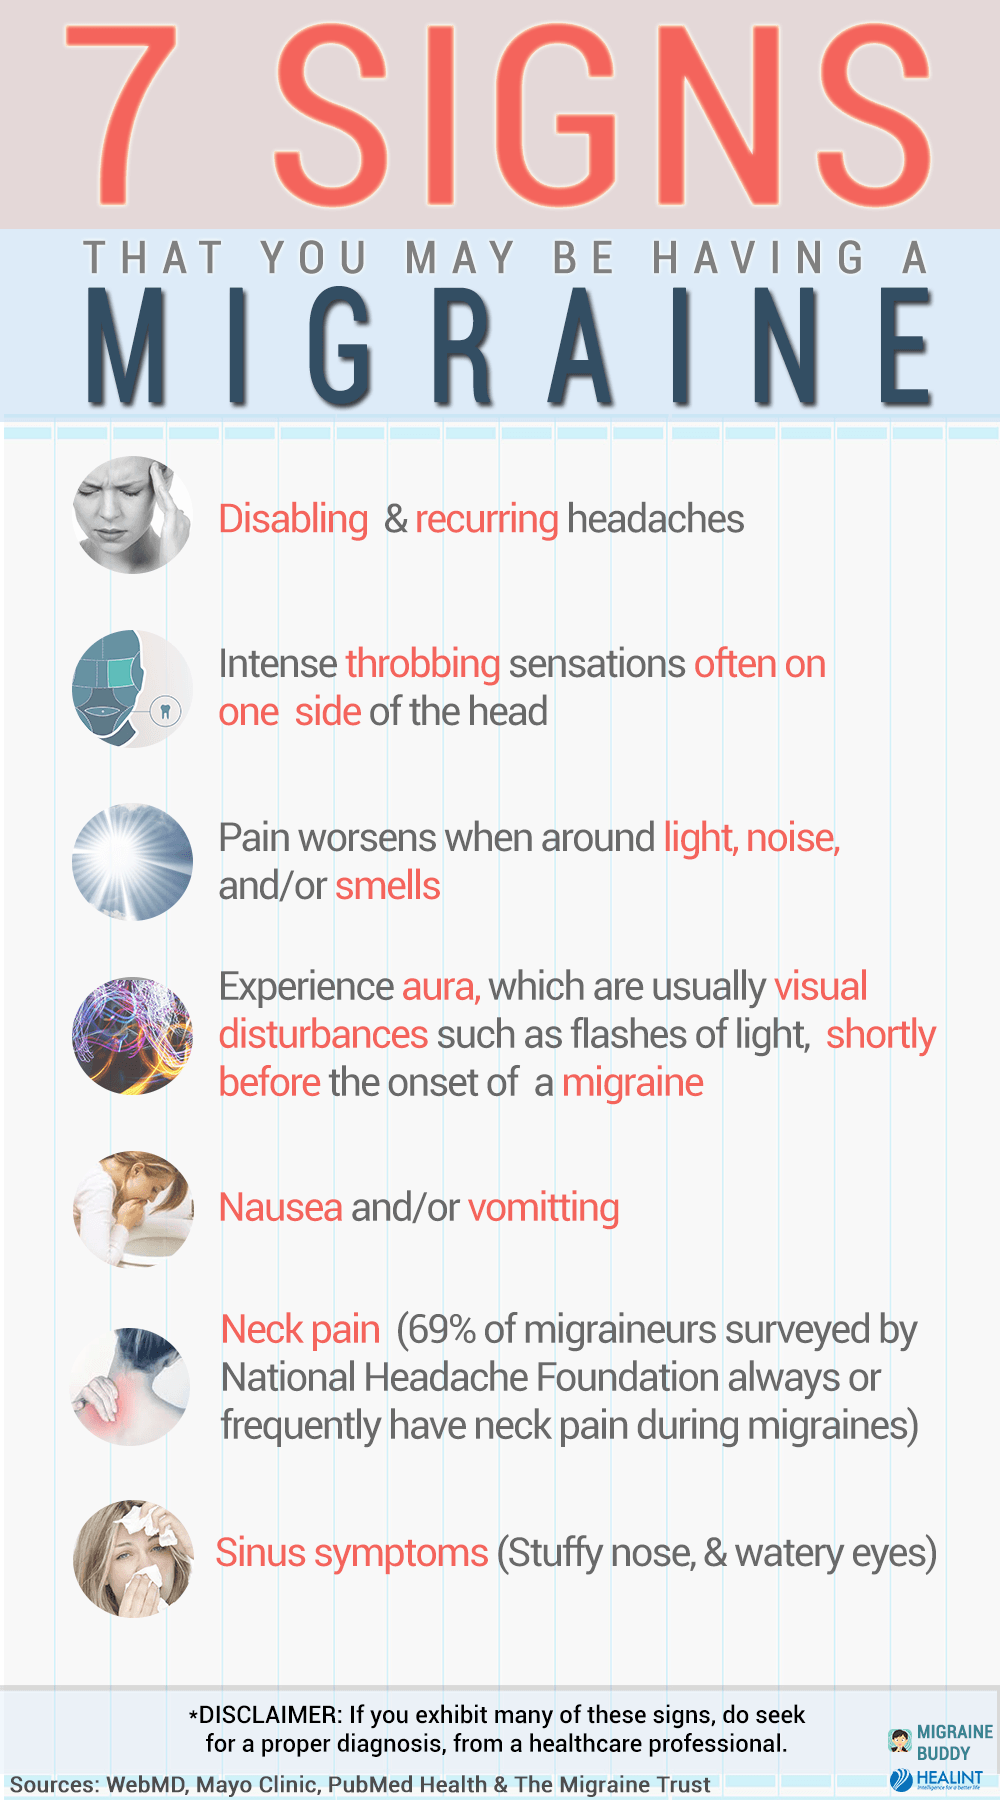 7-Signs-That-You-May-Be-Having-A-Migraine.png